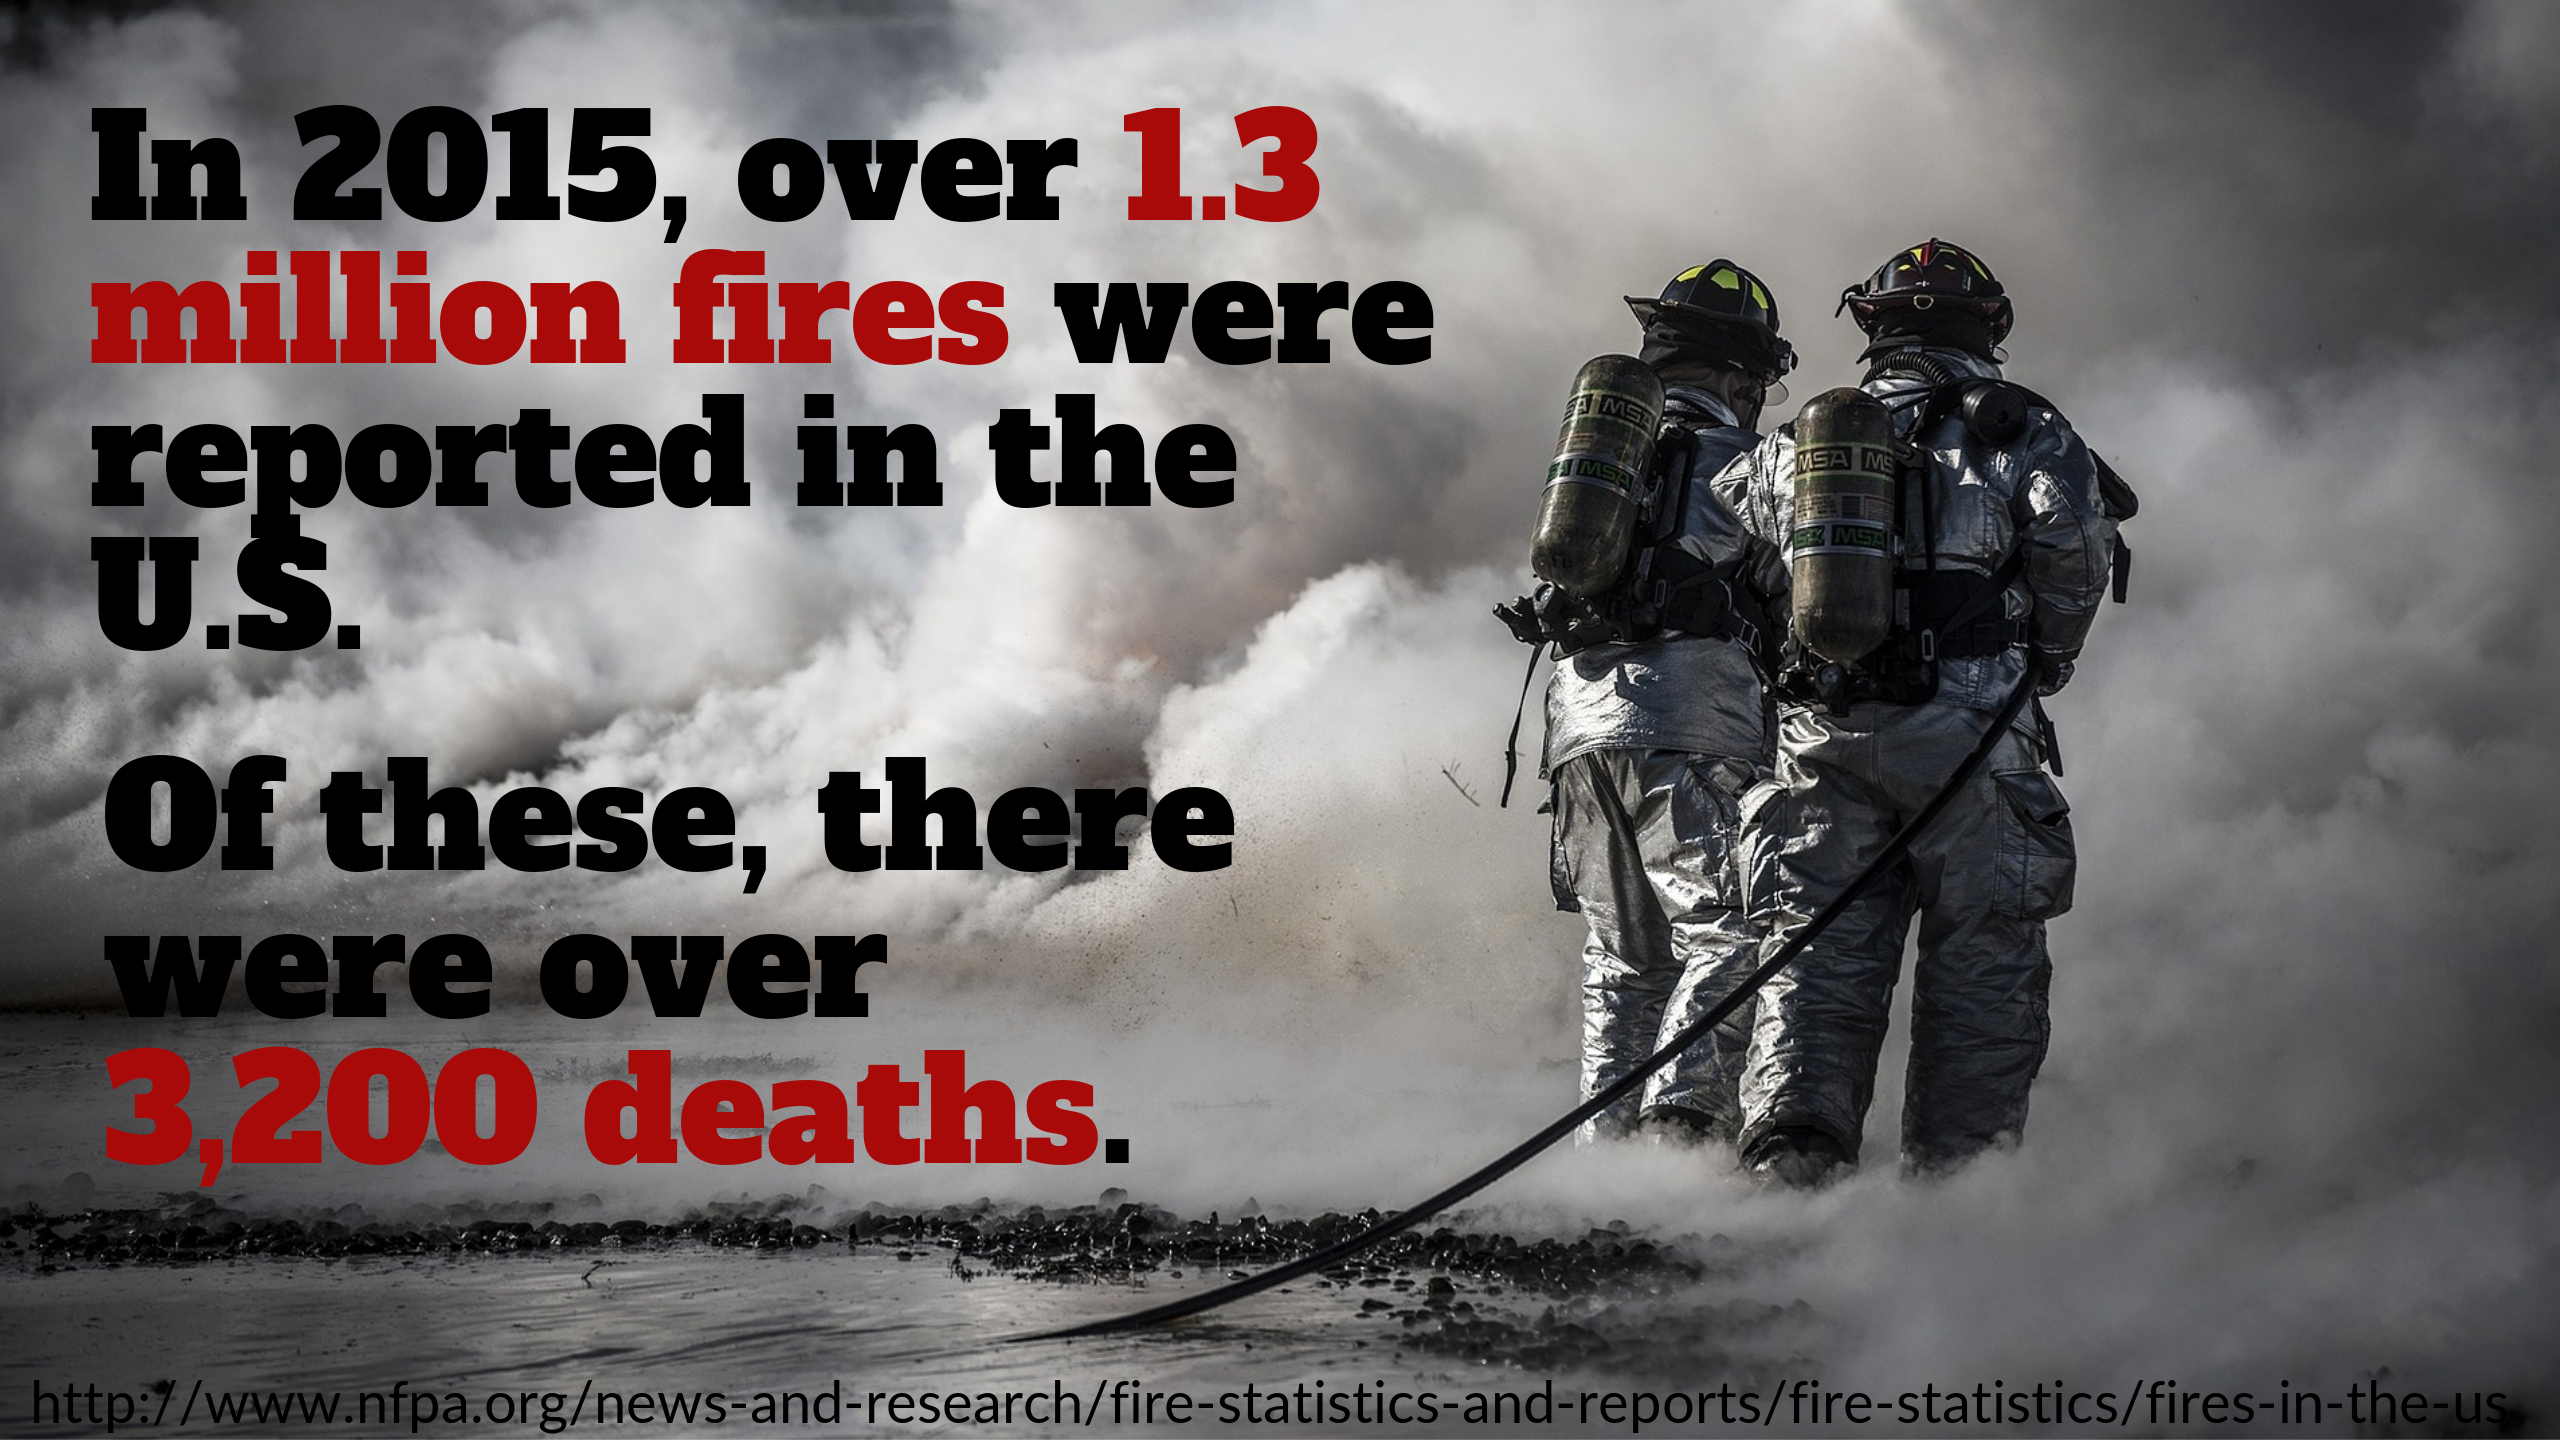 fire deaths in 2015